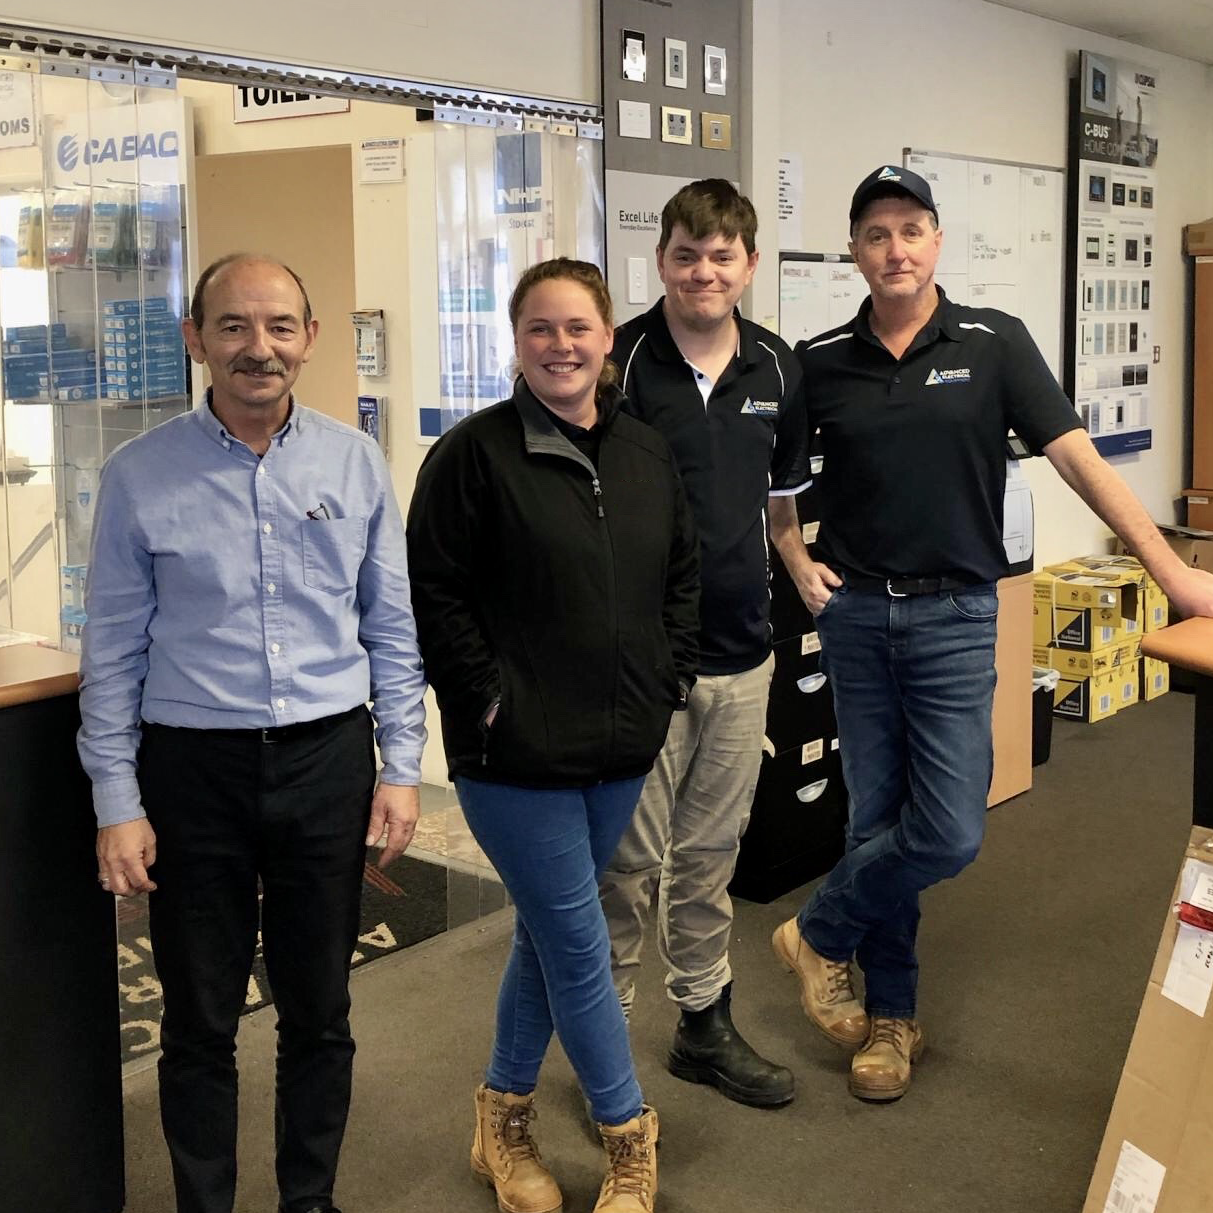 Picture of Russell, Michelle, Nathan and Paul standing together in Bunbury branch.